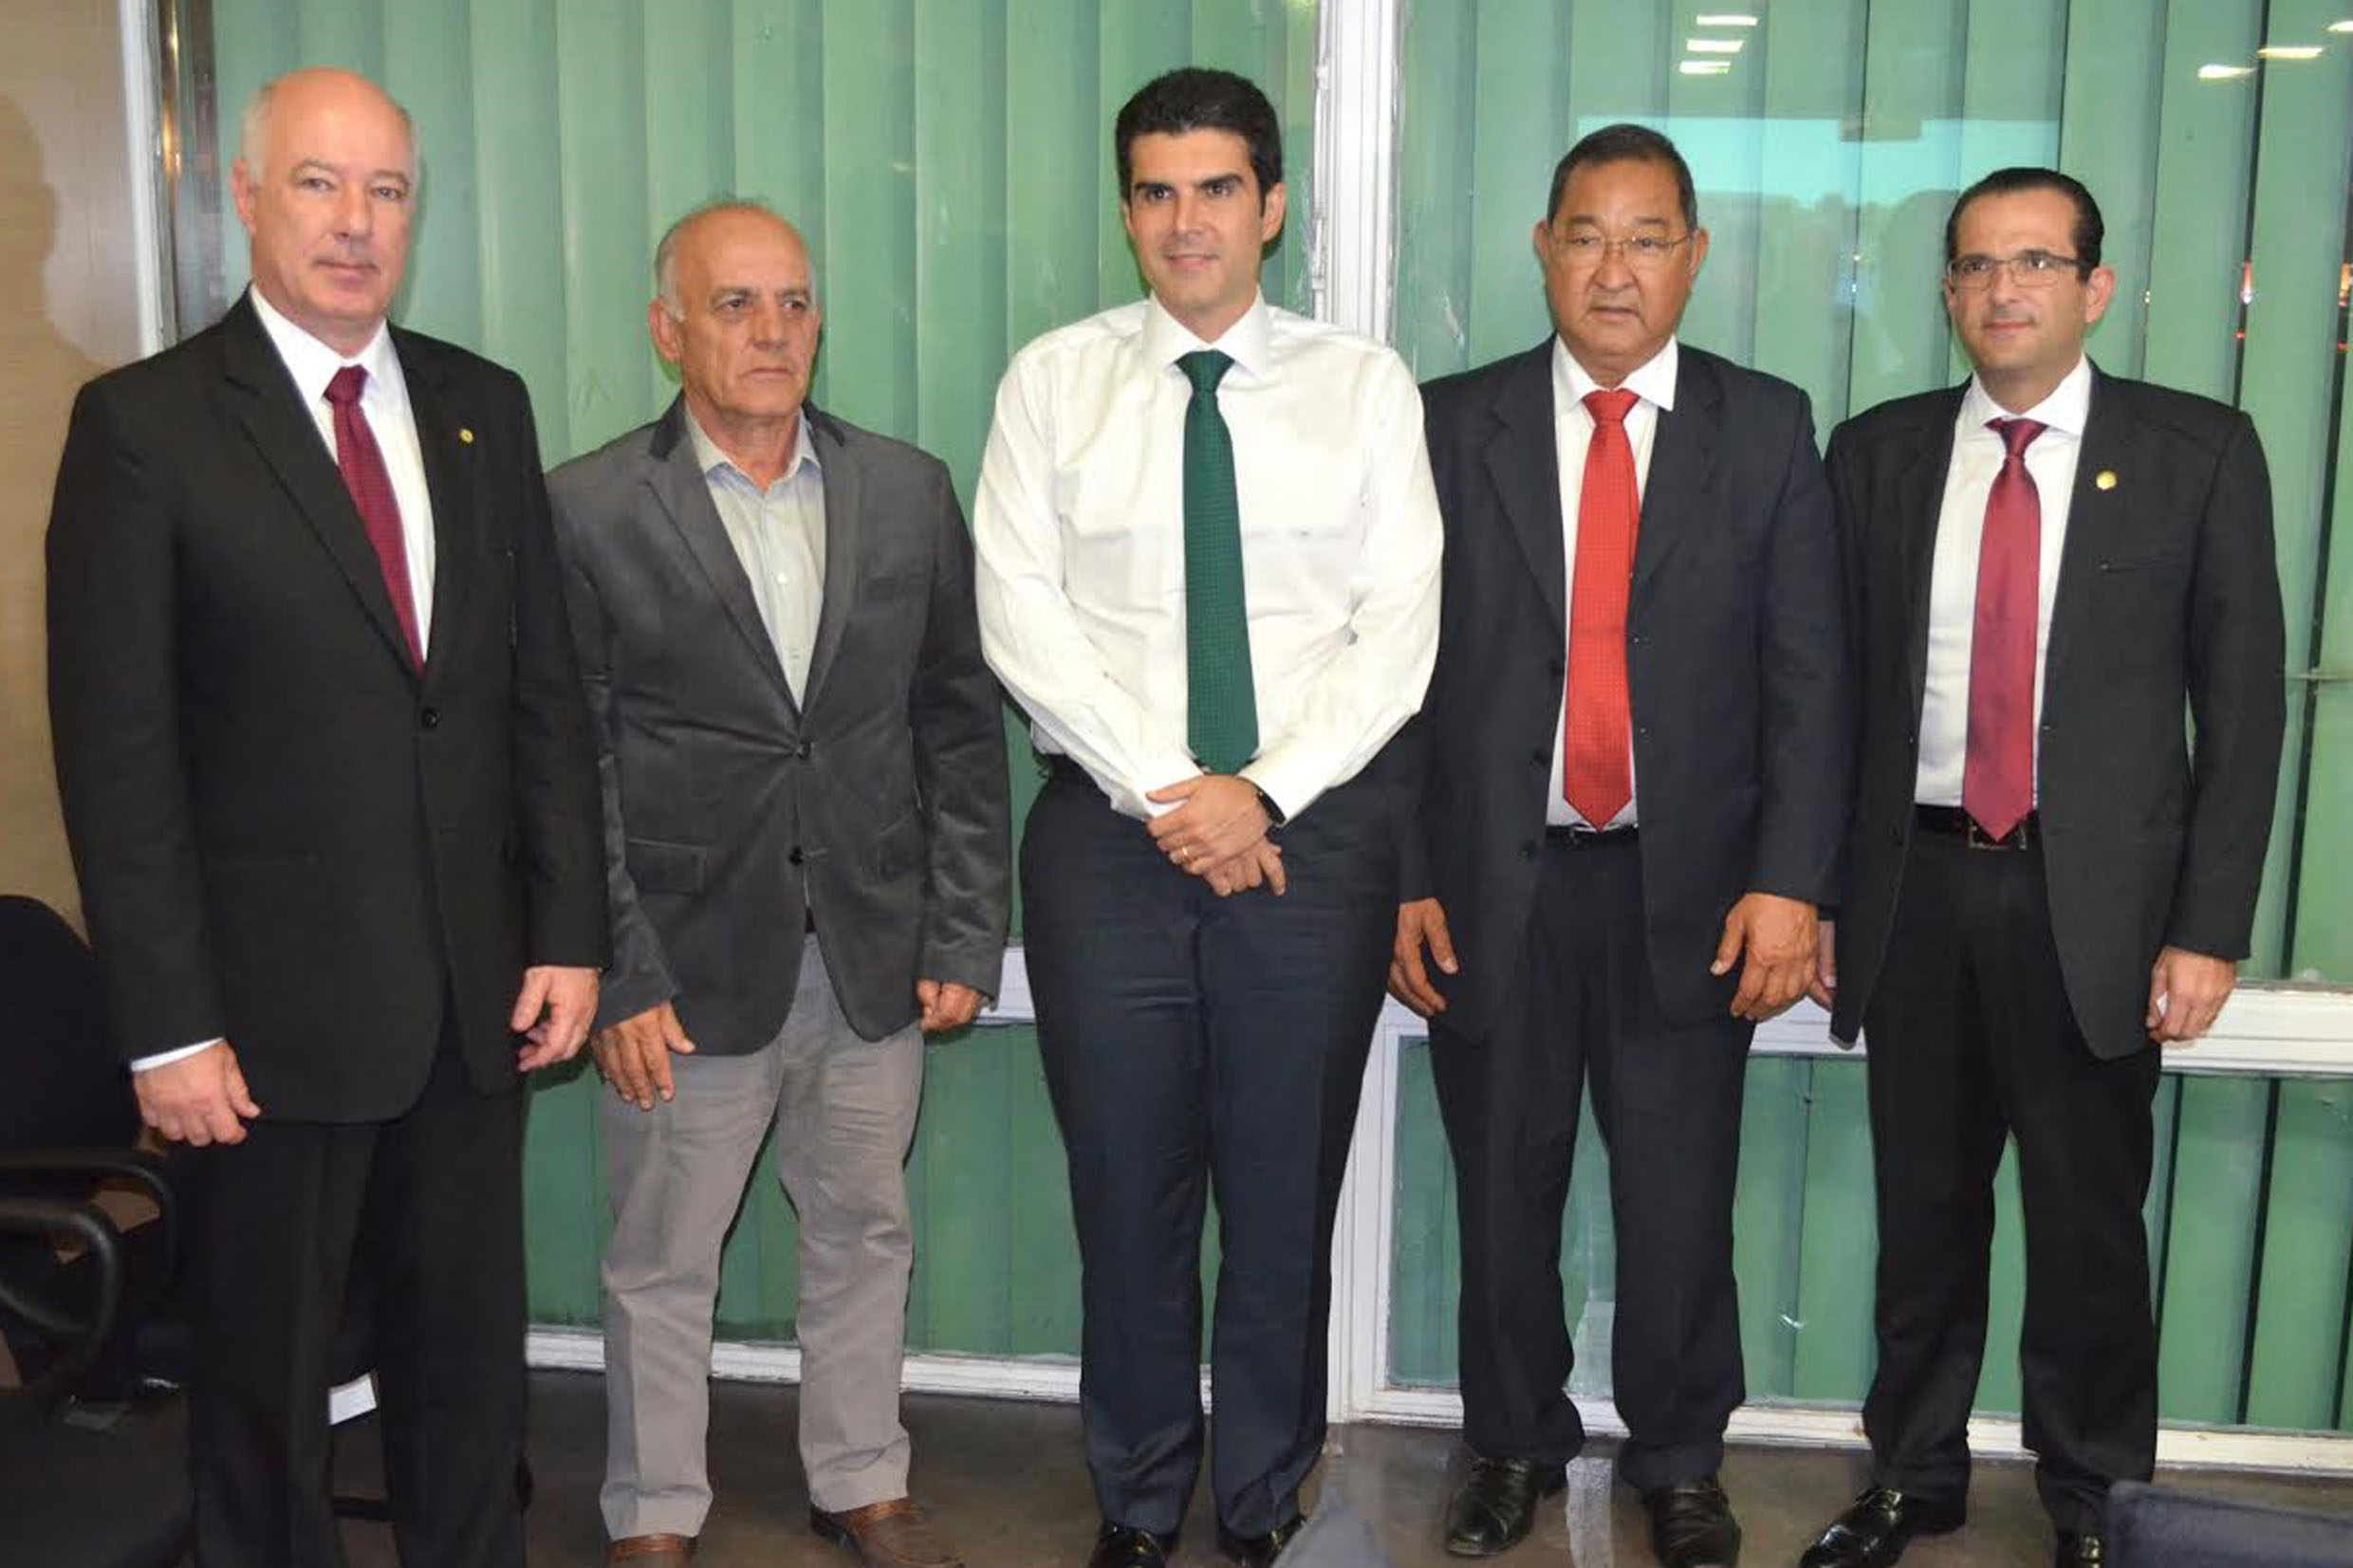 Herculano Passos, Vicente Zacan, Helder Barbalho, Mario Inui e Chedid<a style='float:right' href='https://www3.al.sp.gov.br/repositorio/noticia/N-06-2016/fg192068.jpg' target=_blank><img src='/_img/material-file-download-white.png' width='14px' alt='Clique para baixar a imagem'></a>